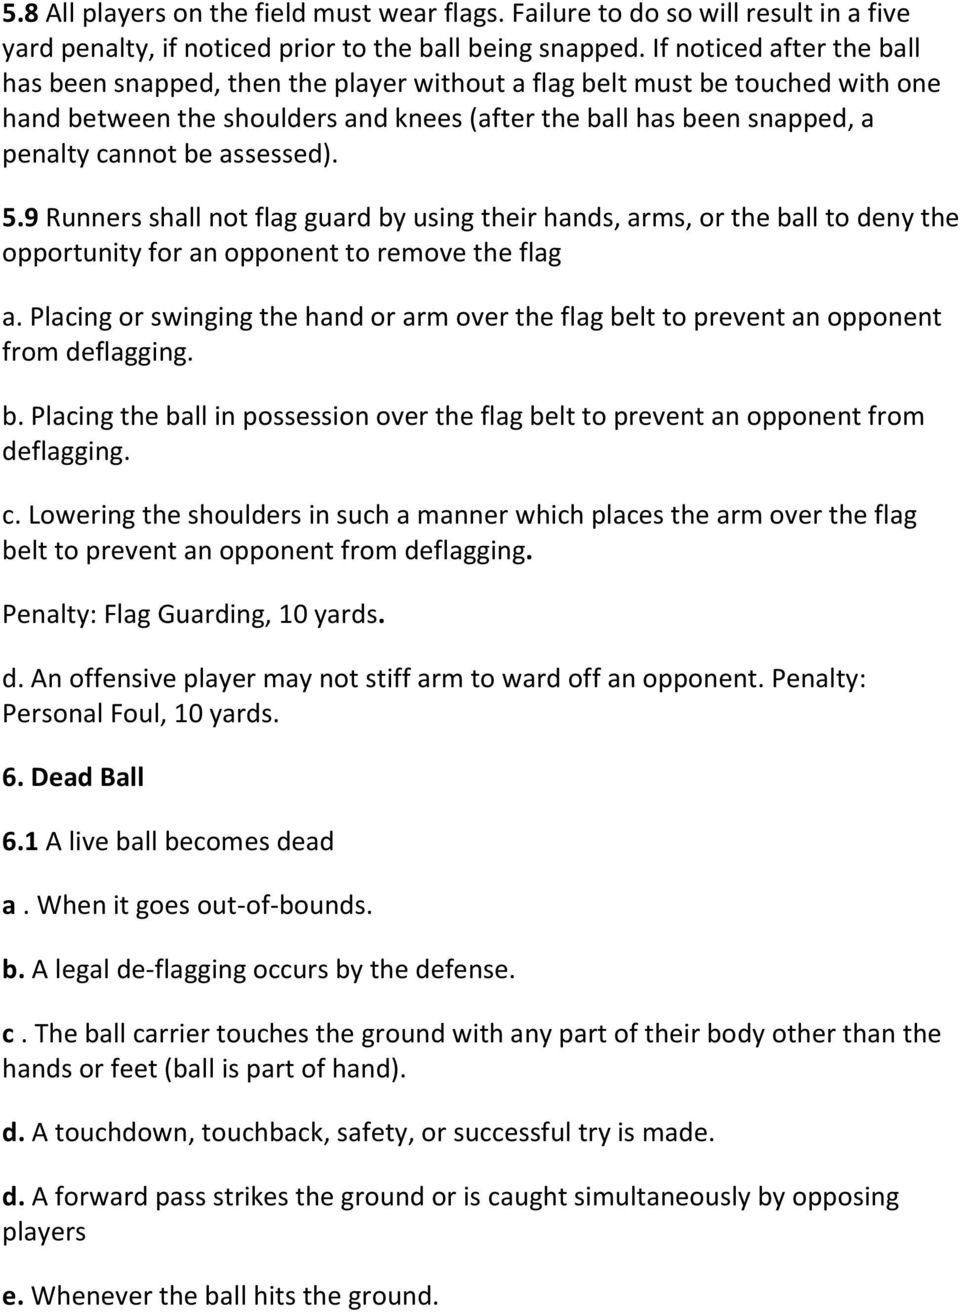 assessed). 5.9 Runners shall not flag guard by using their hands, arms, or the ball to deny the opportunity for an opponent to remove the flag a.